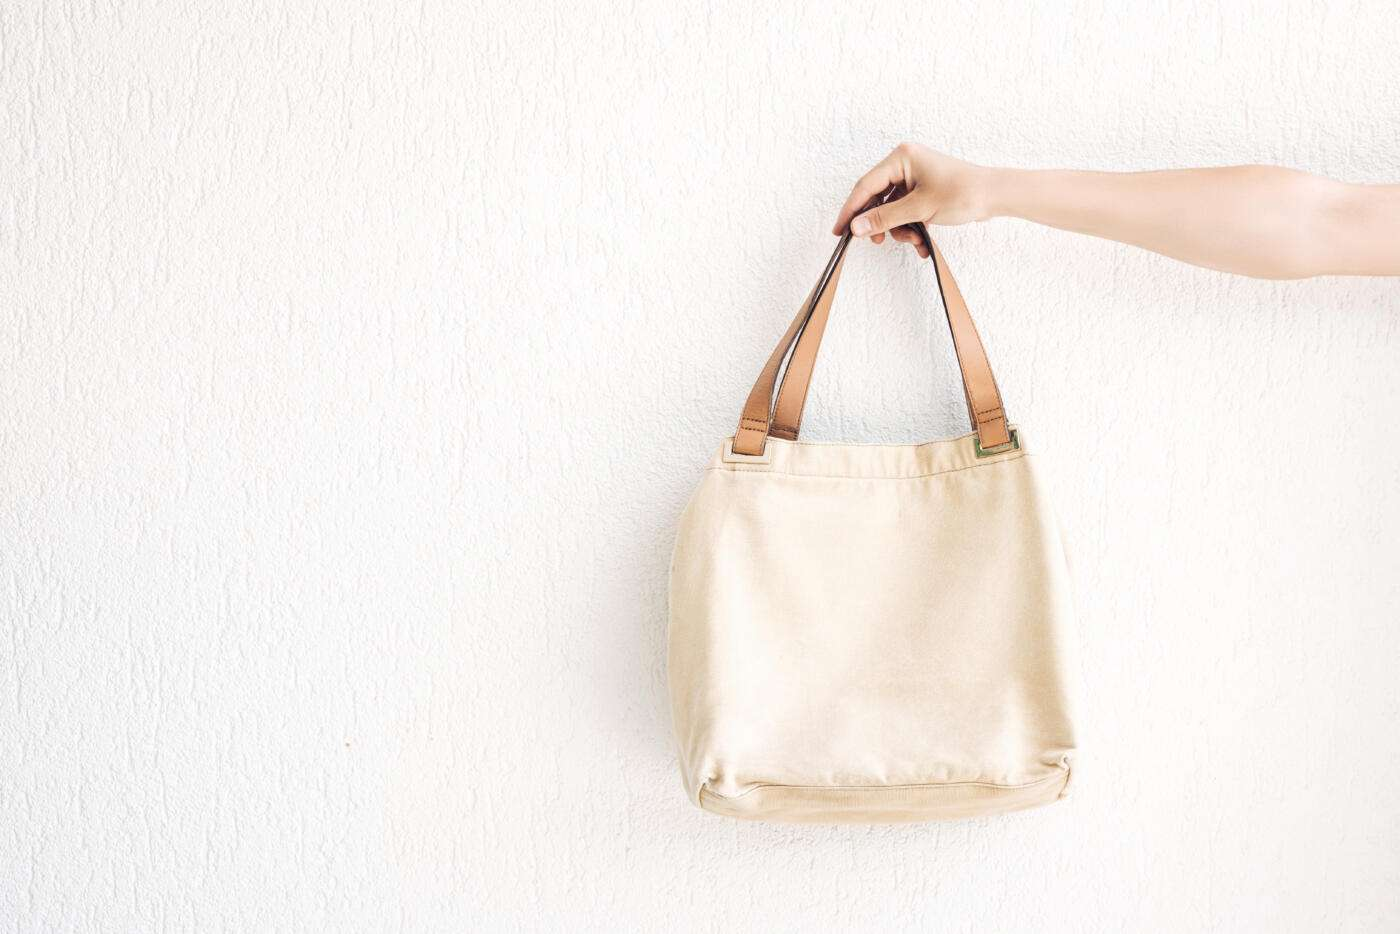 pmg_tote_gusset_59